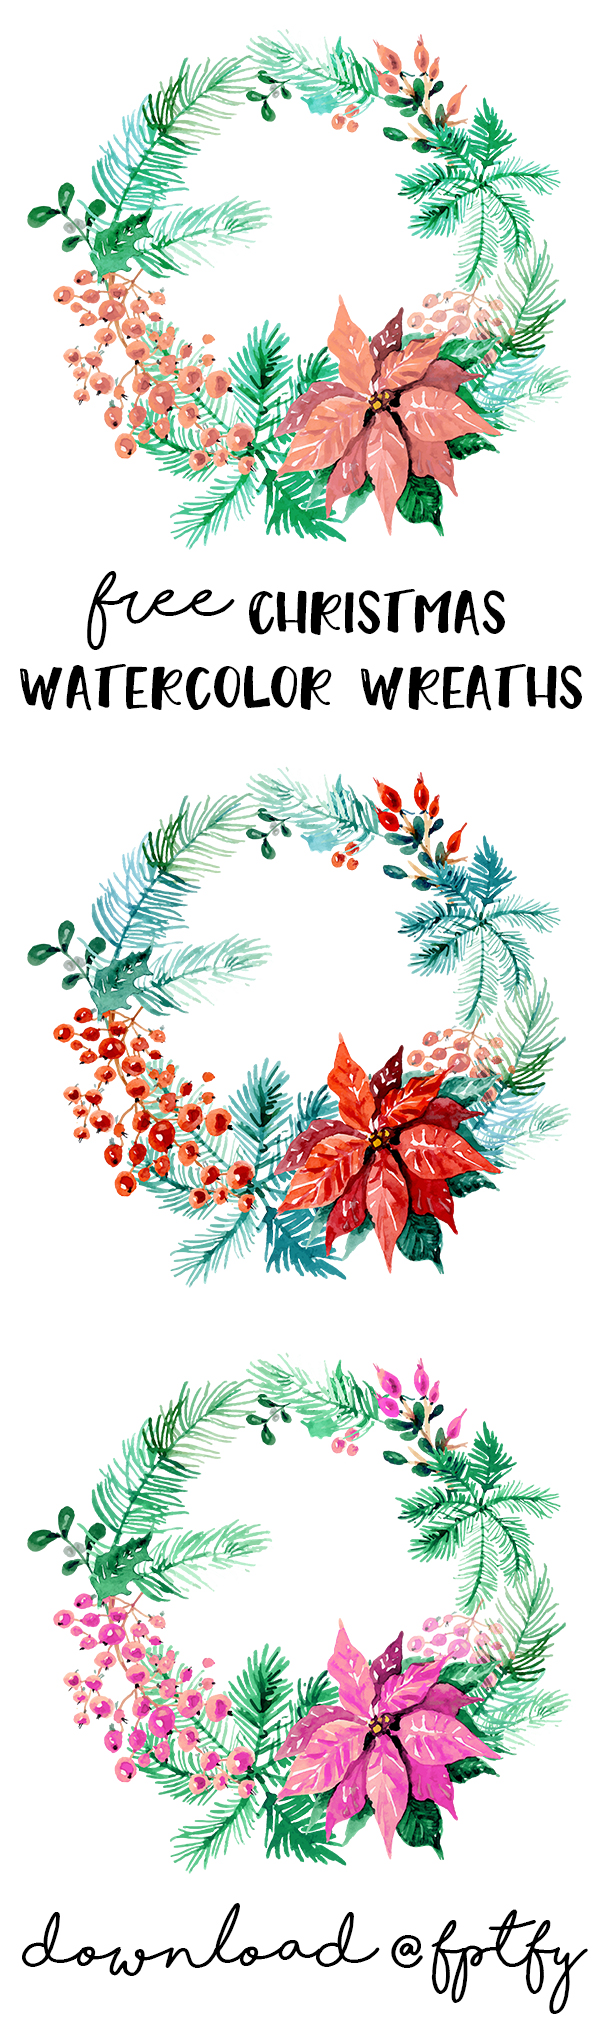 free-christmas-watercolor-wreaths-images-web-1